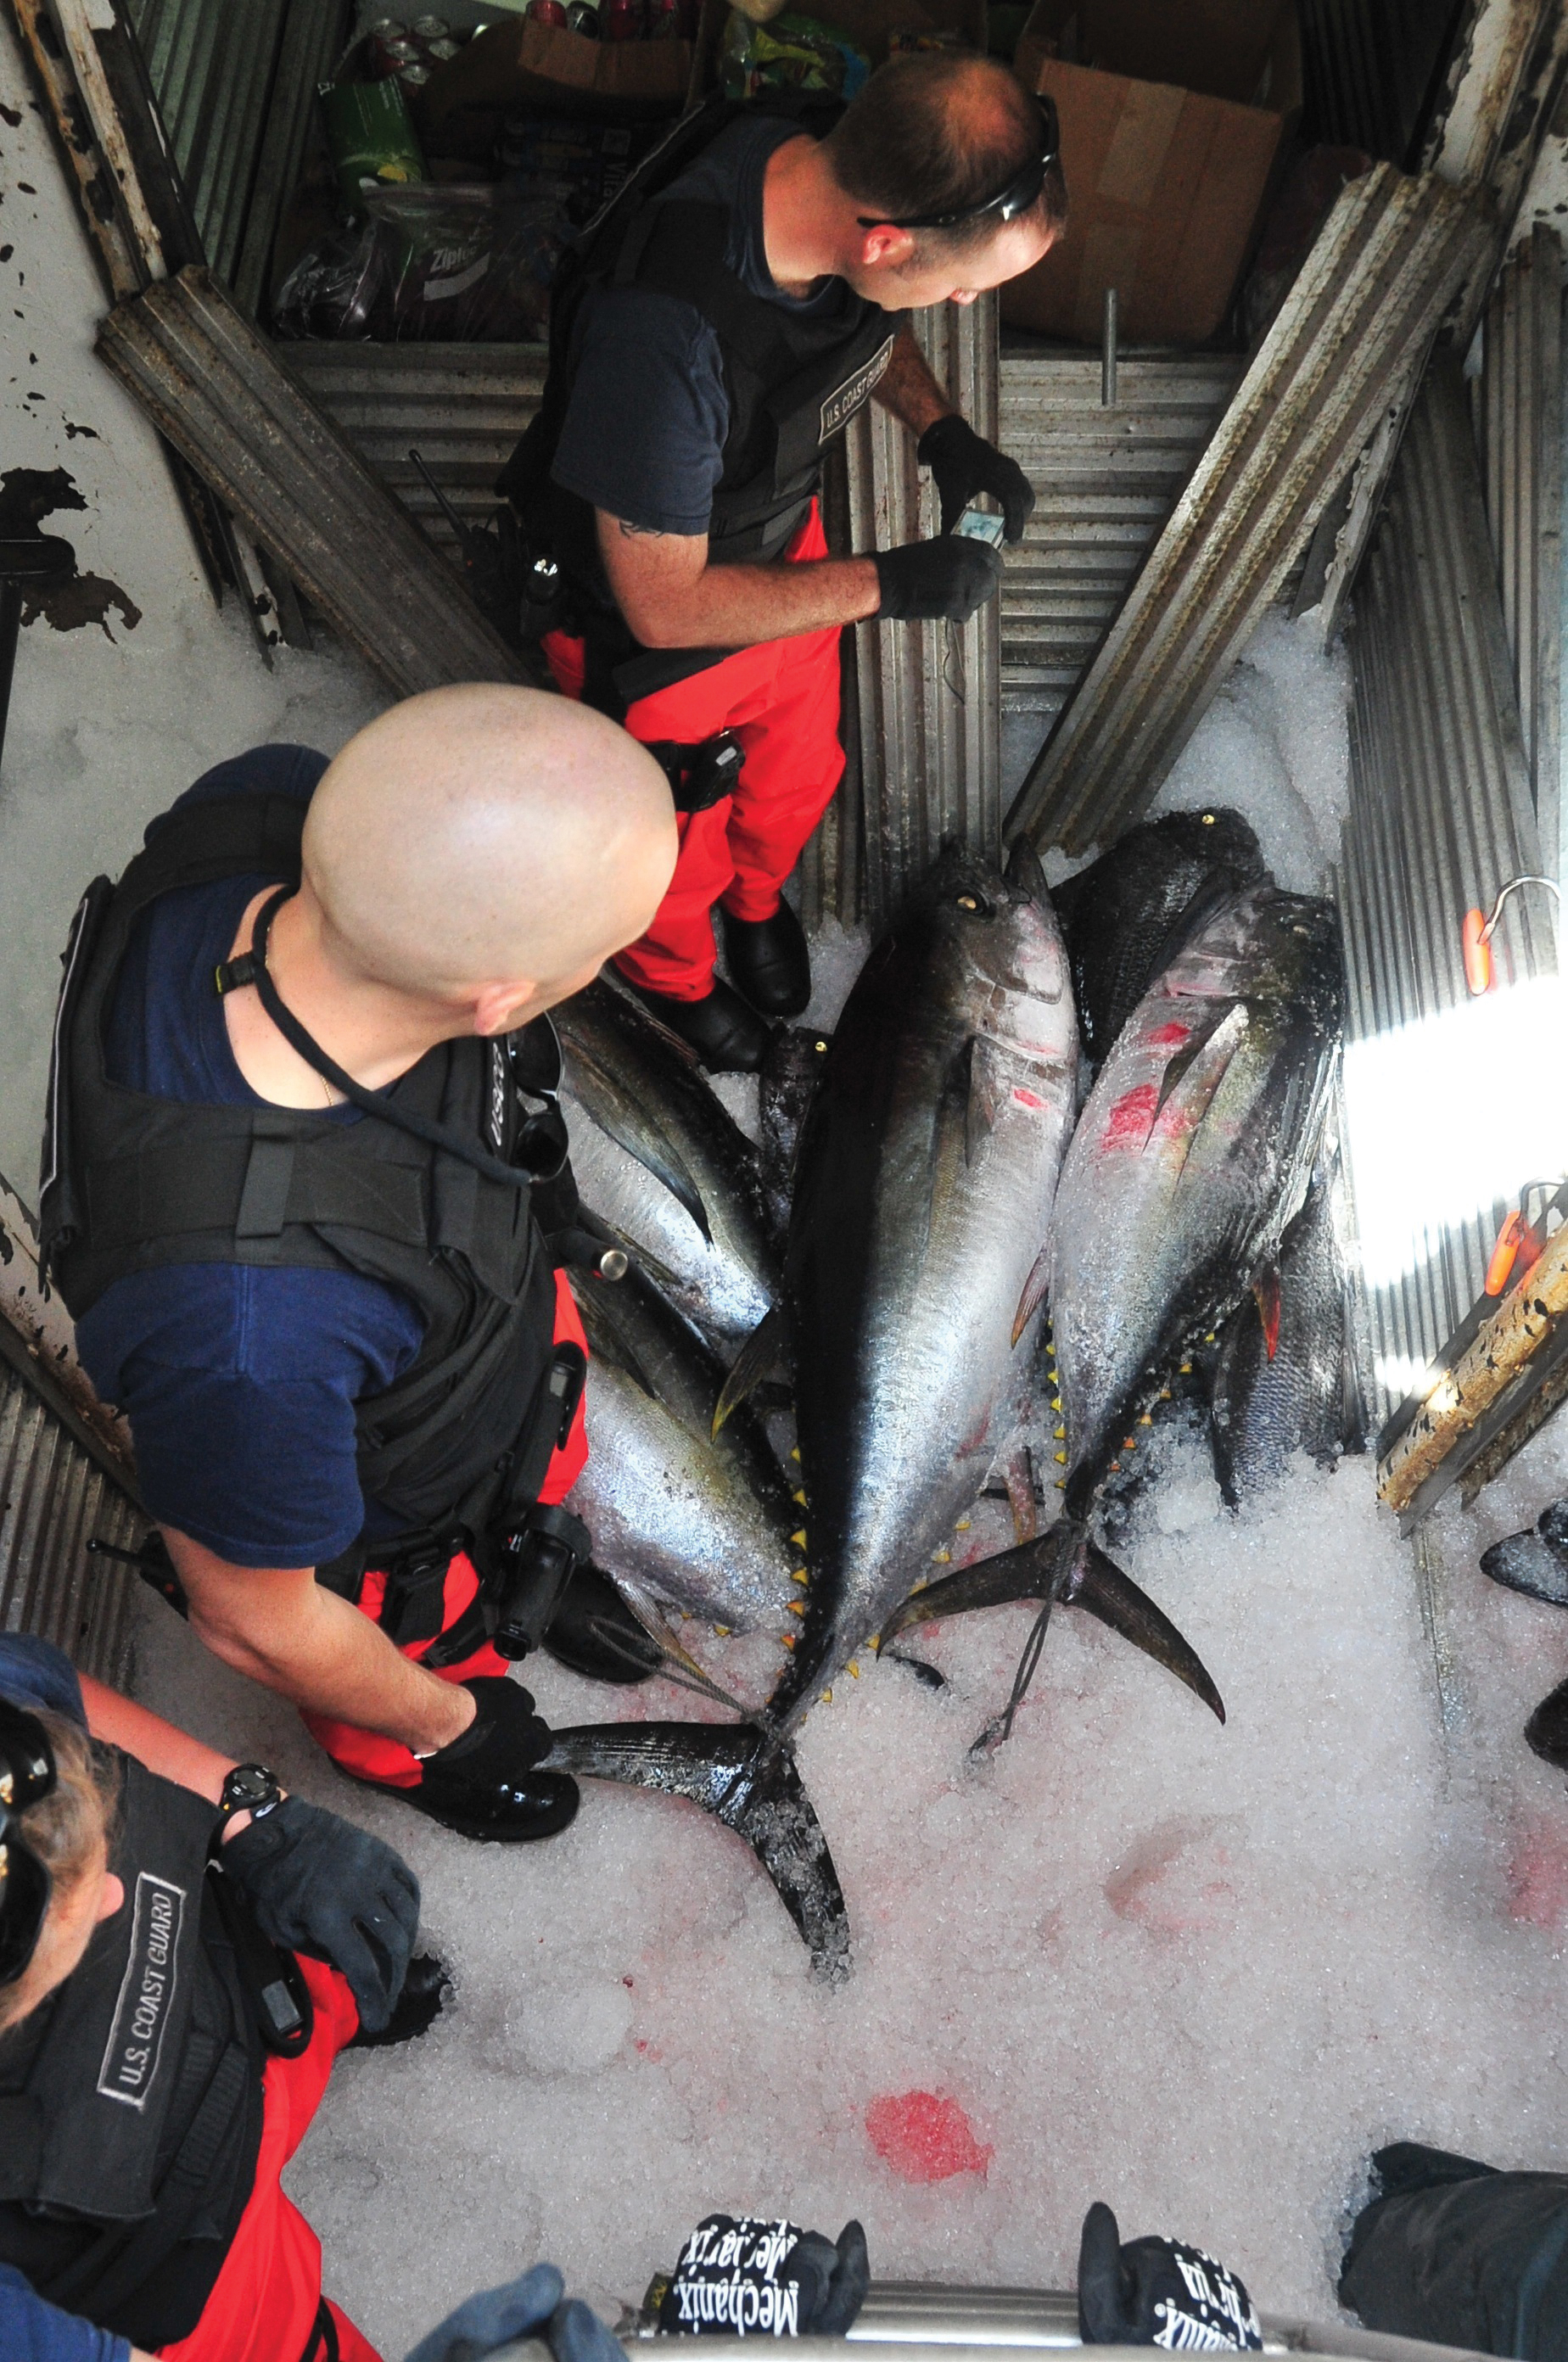 Boarding team members from Coast Guard Cutter Waesche inspect the refrigeration compartment of the fishing vessel Mariah